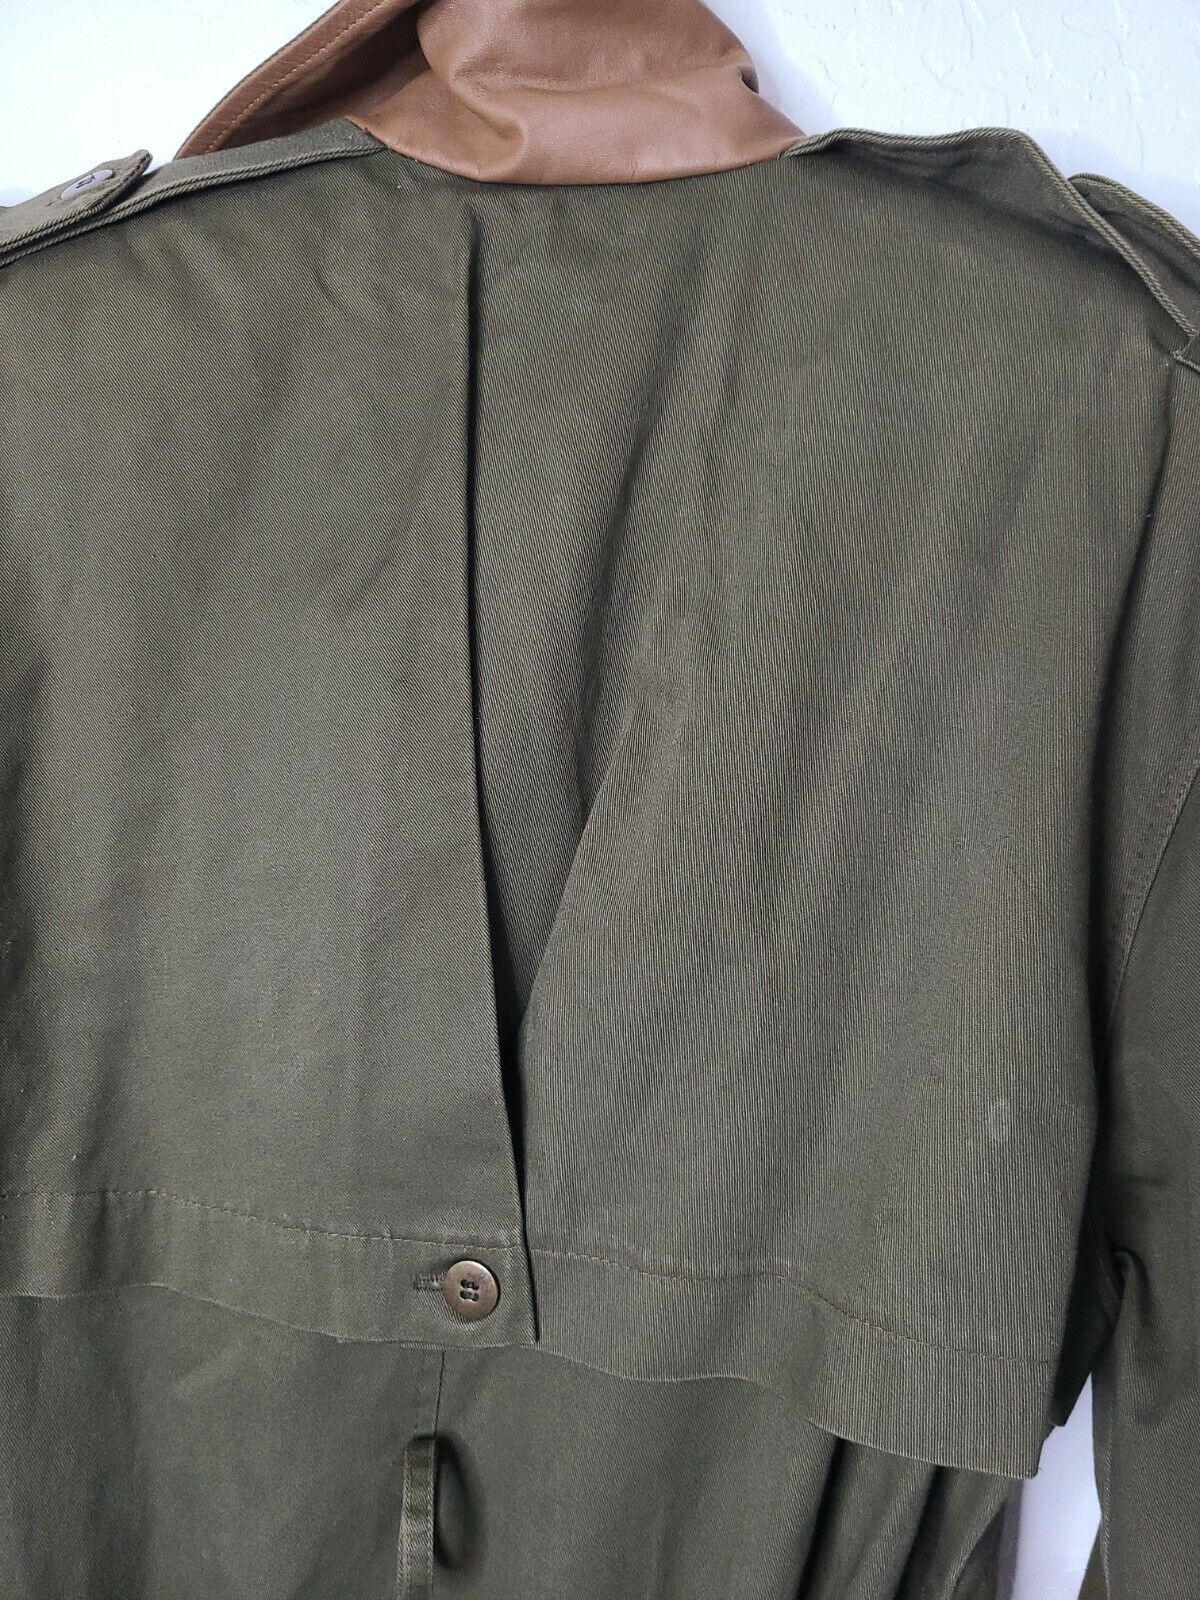 Classic Military Style Trench Coat, Olive Army Gr… - image 8